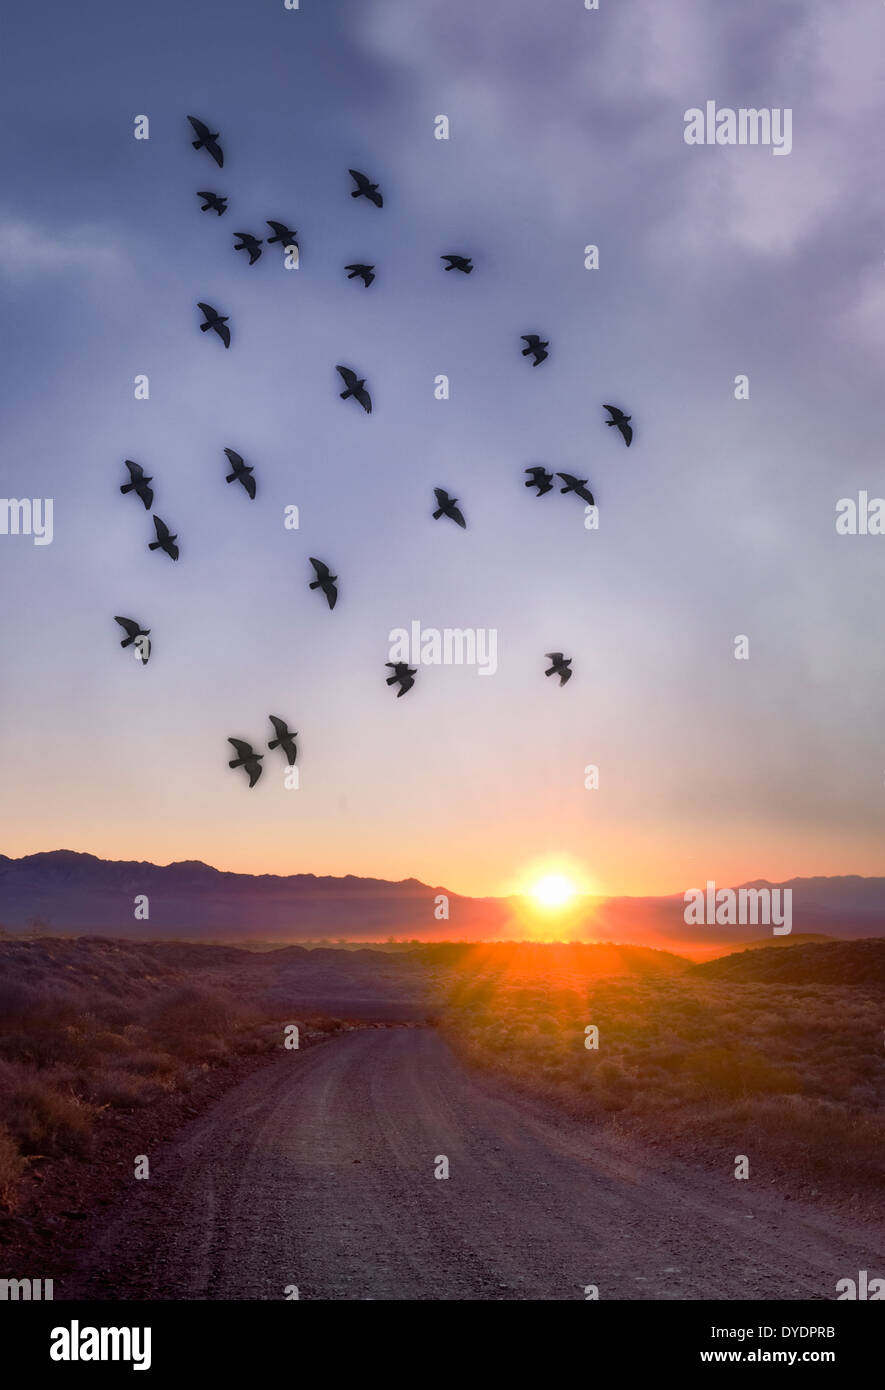 Flock Of Birds Flying Over Desert Sunrise & Dirt Road, Nevada USA - Stock Image